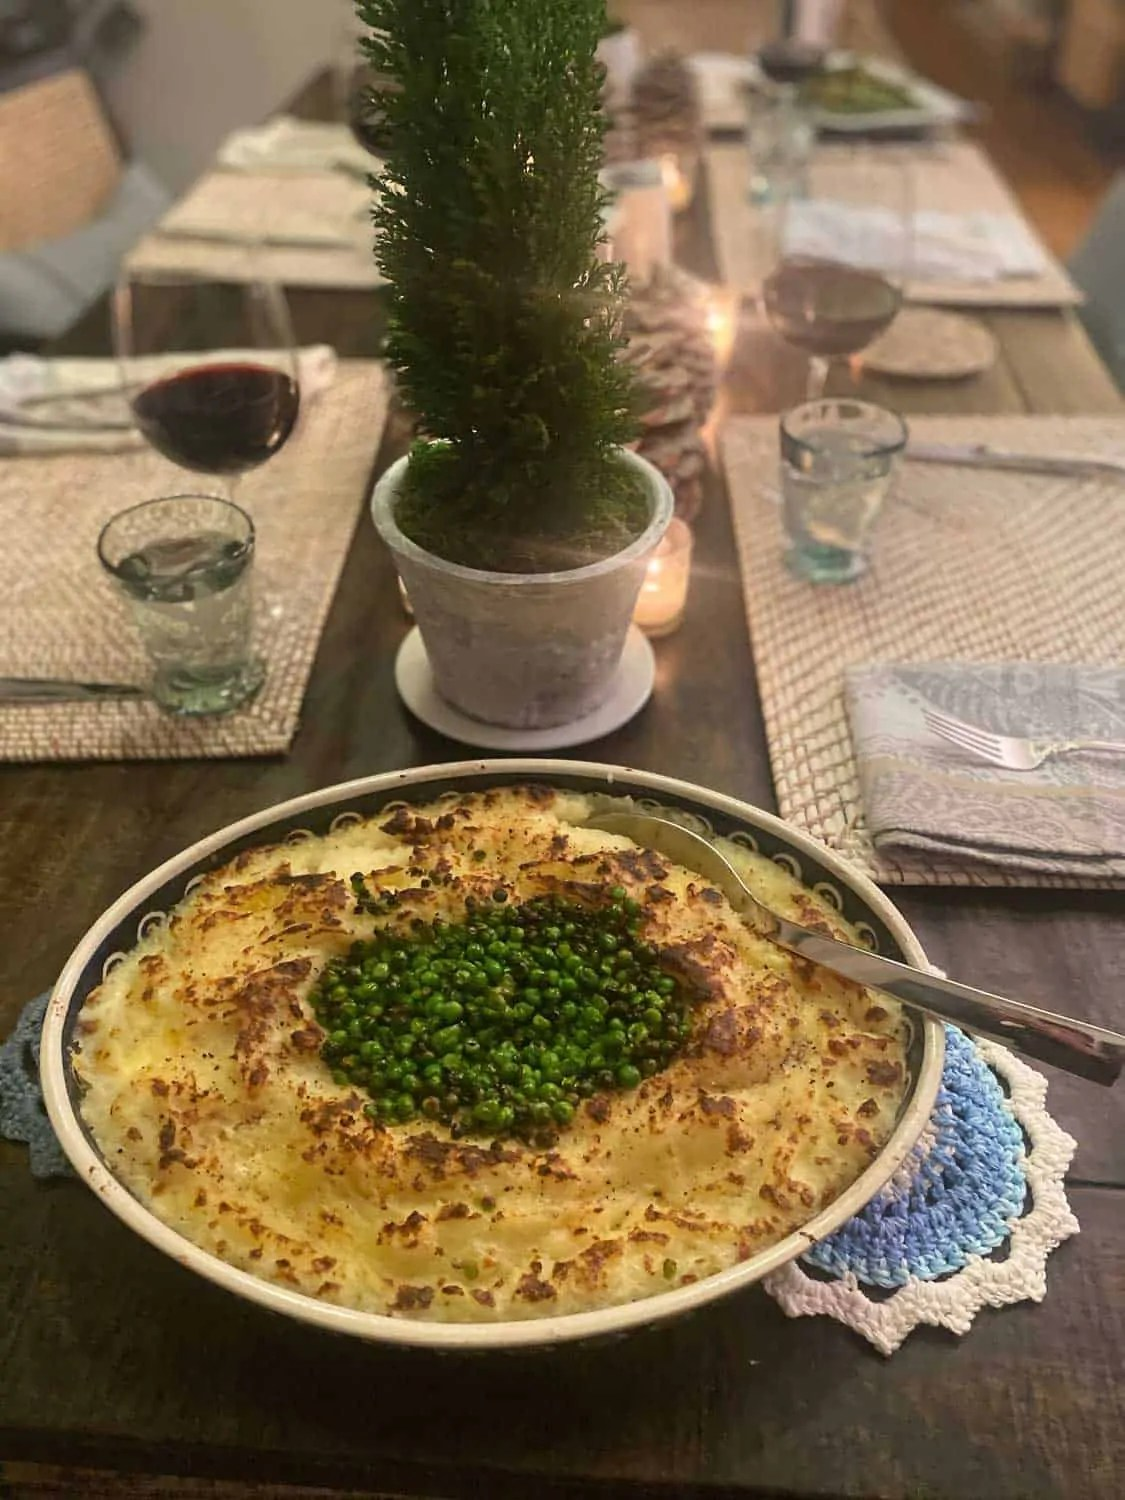 Baked Nashed Potatoes with Mozzarella and Peas